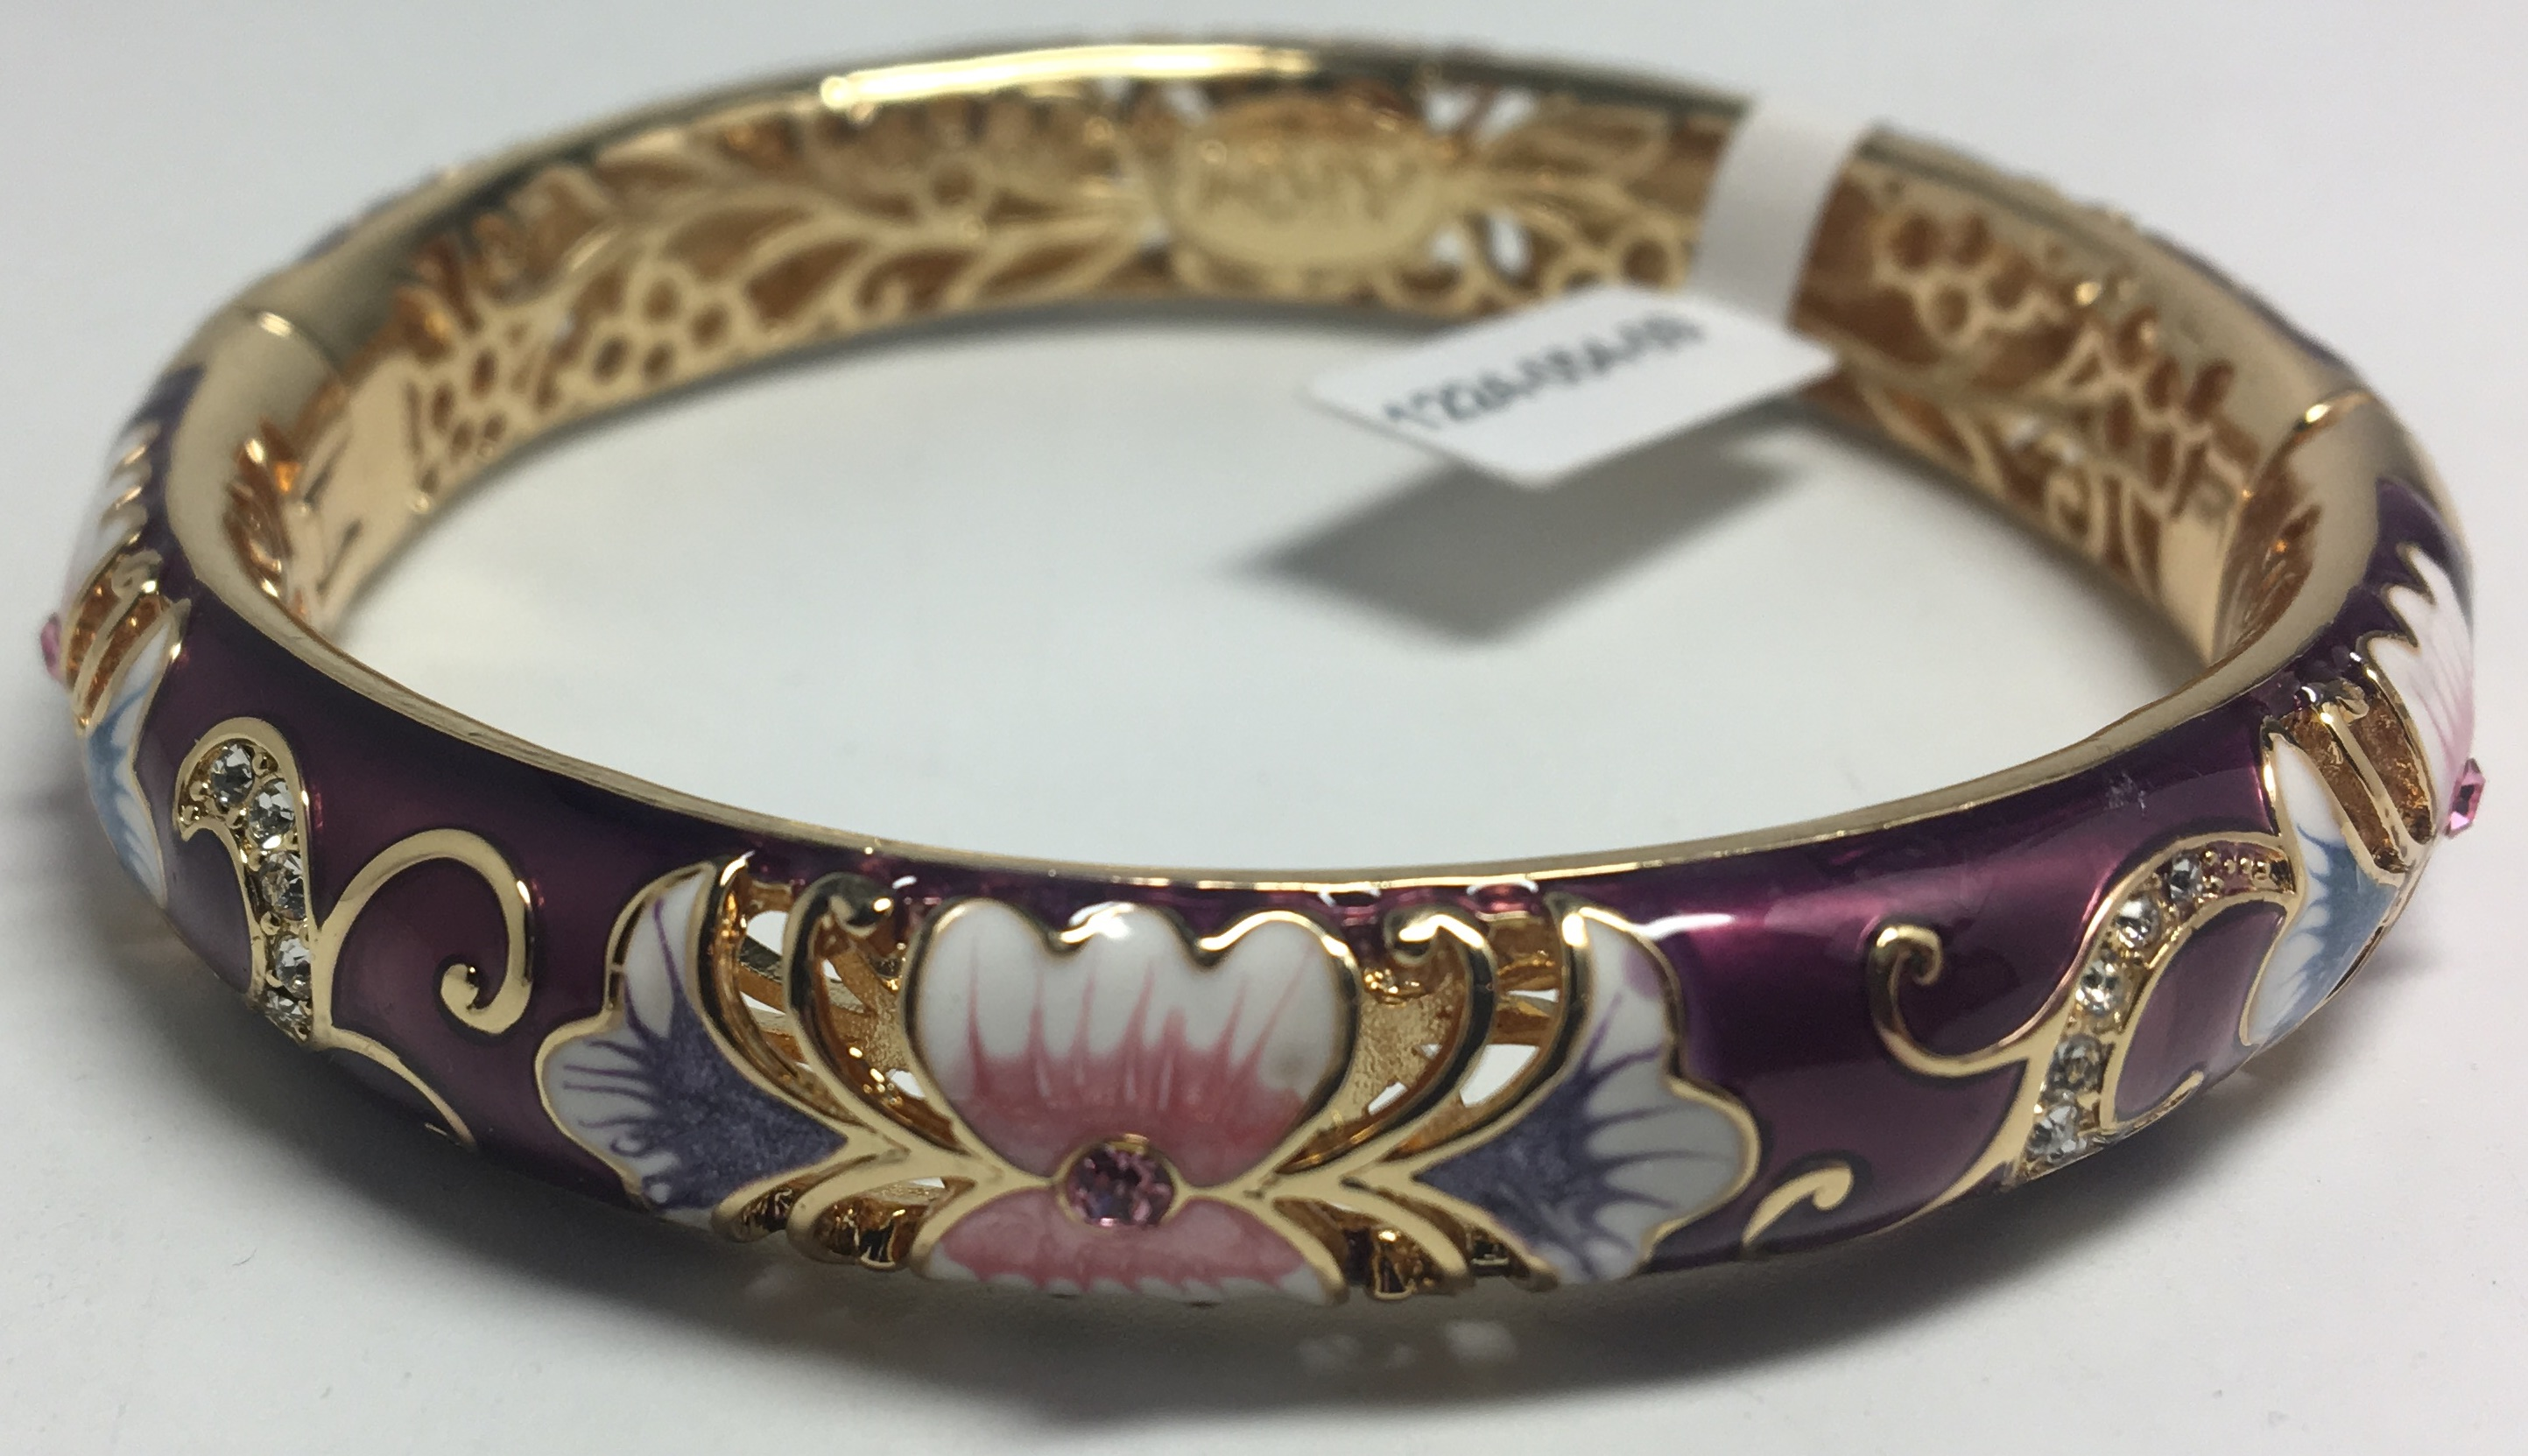 Flowers Violet Bracelet with Enamel (by AKM Gifts)